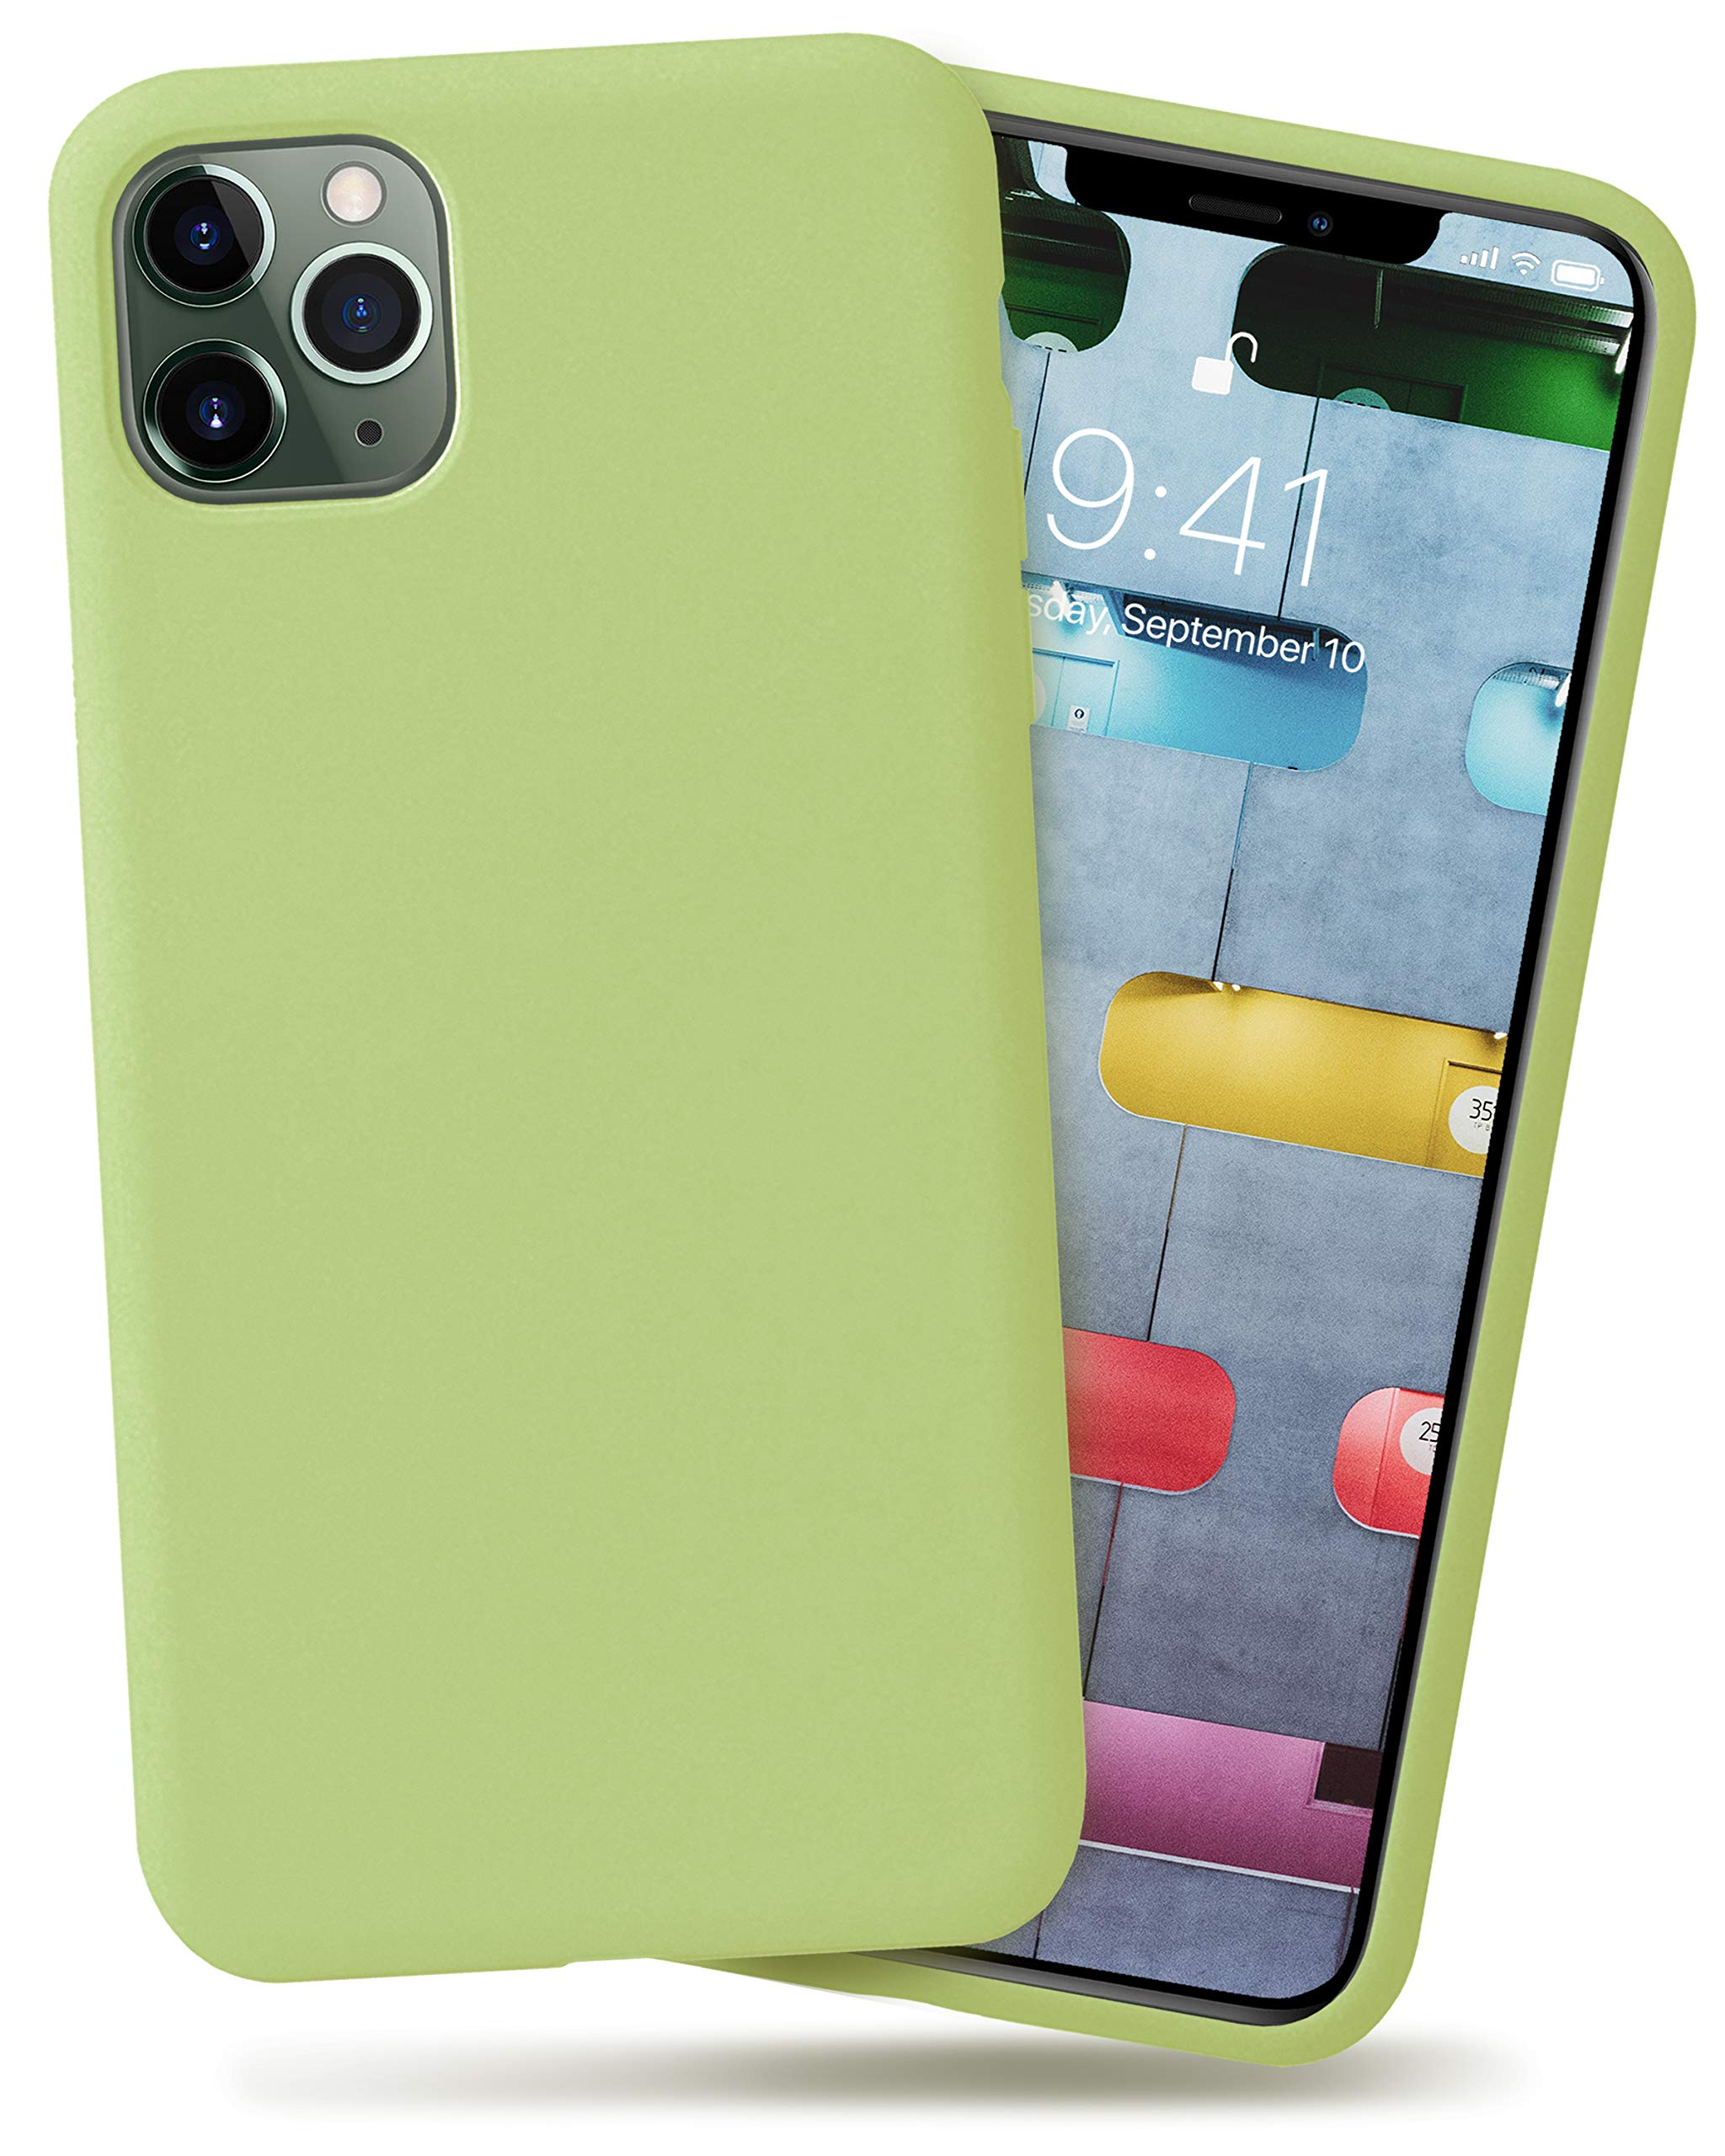 OCOMMO iPhone 11 Pro Silicone Case, Full Body Shockproof Protective Liquid Silicone iPhone 11 Pro Case with Soft Microfiber Lining, Wireless Charging Pad Compatible, Matcha Green